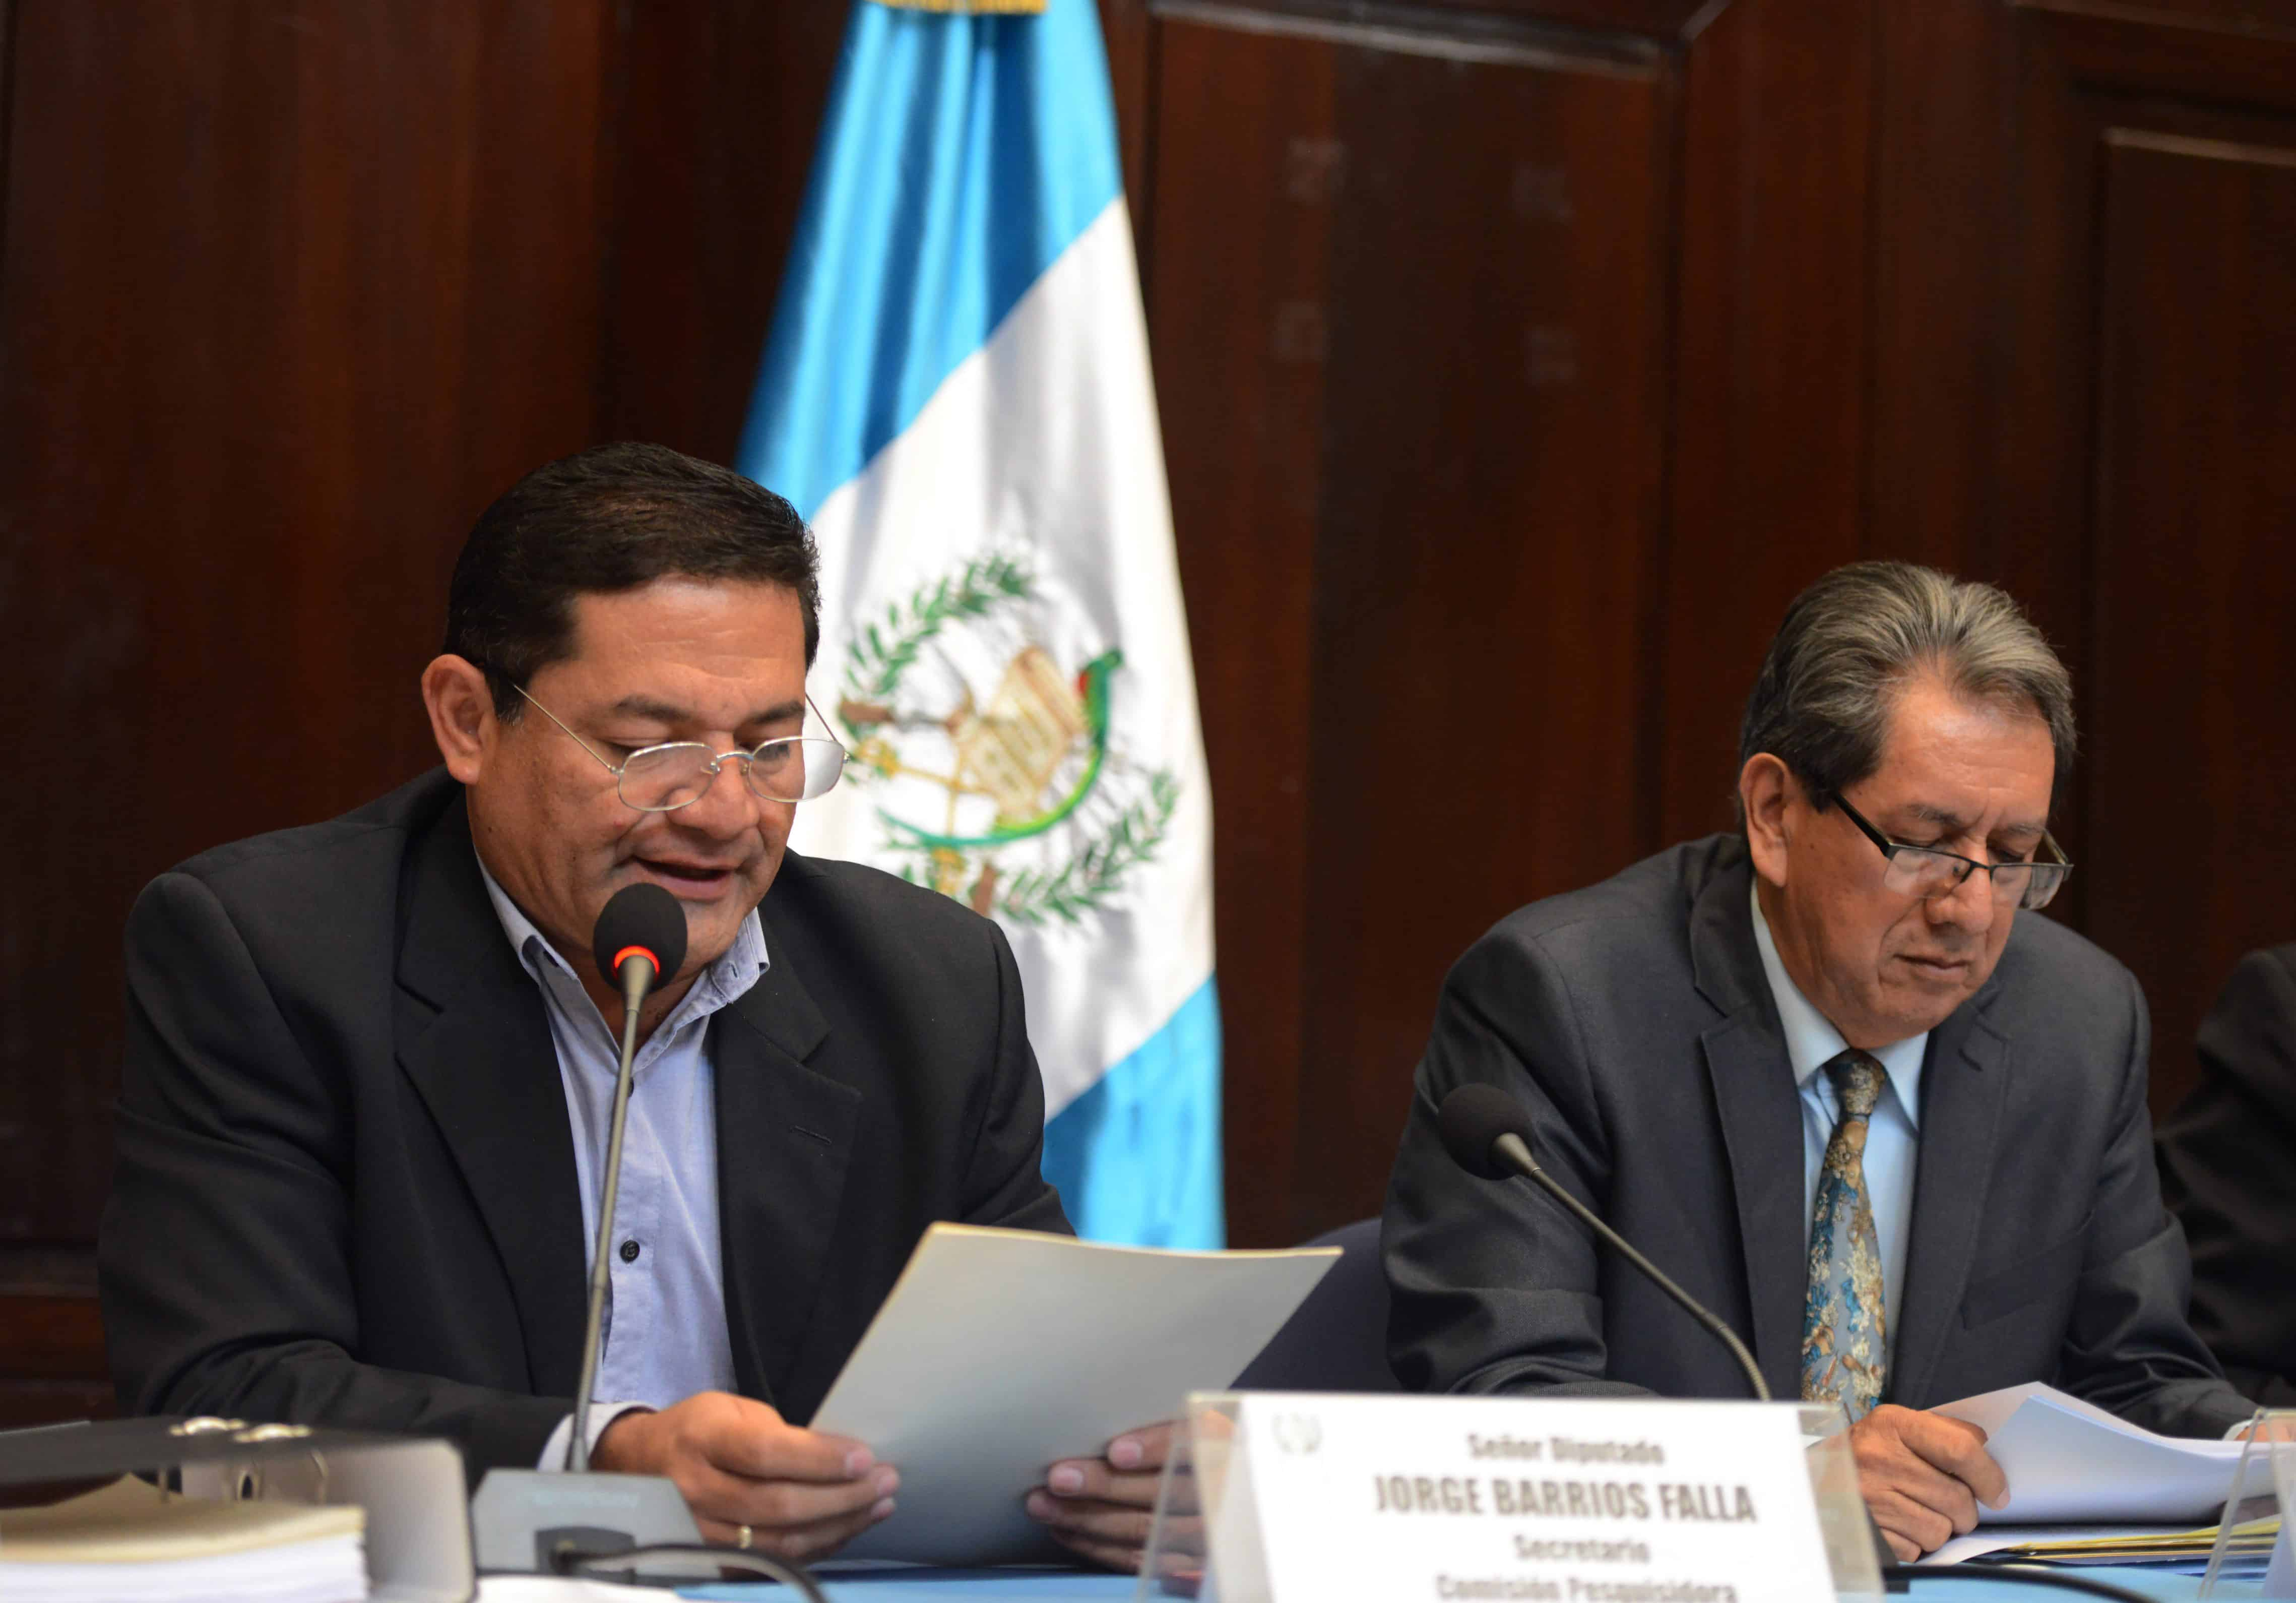 Guatemalan lawmakers Jorge Barrios, left, and Mario Linares read a decision by a special legislative commission to revoke immunity for President Otto Pérez Molina.